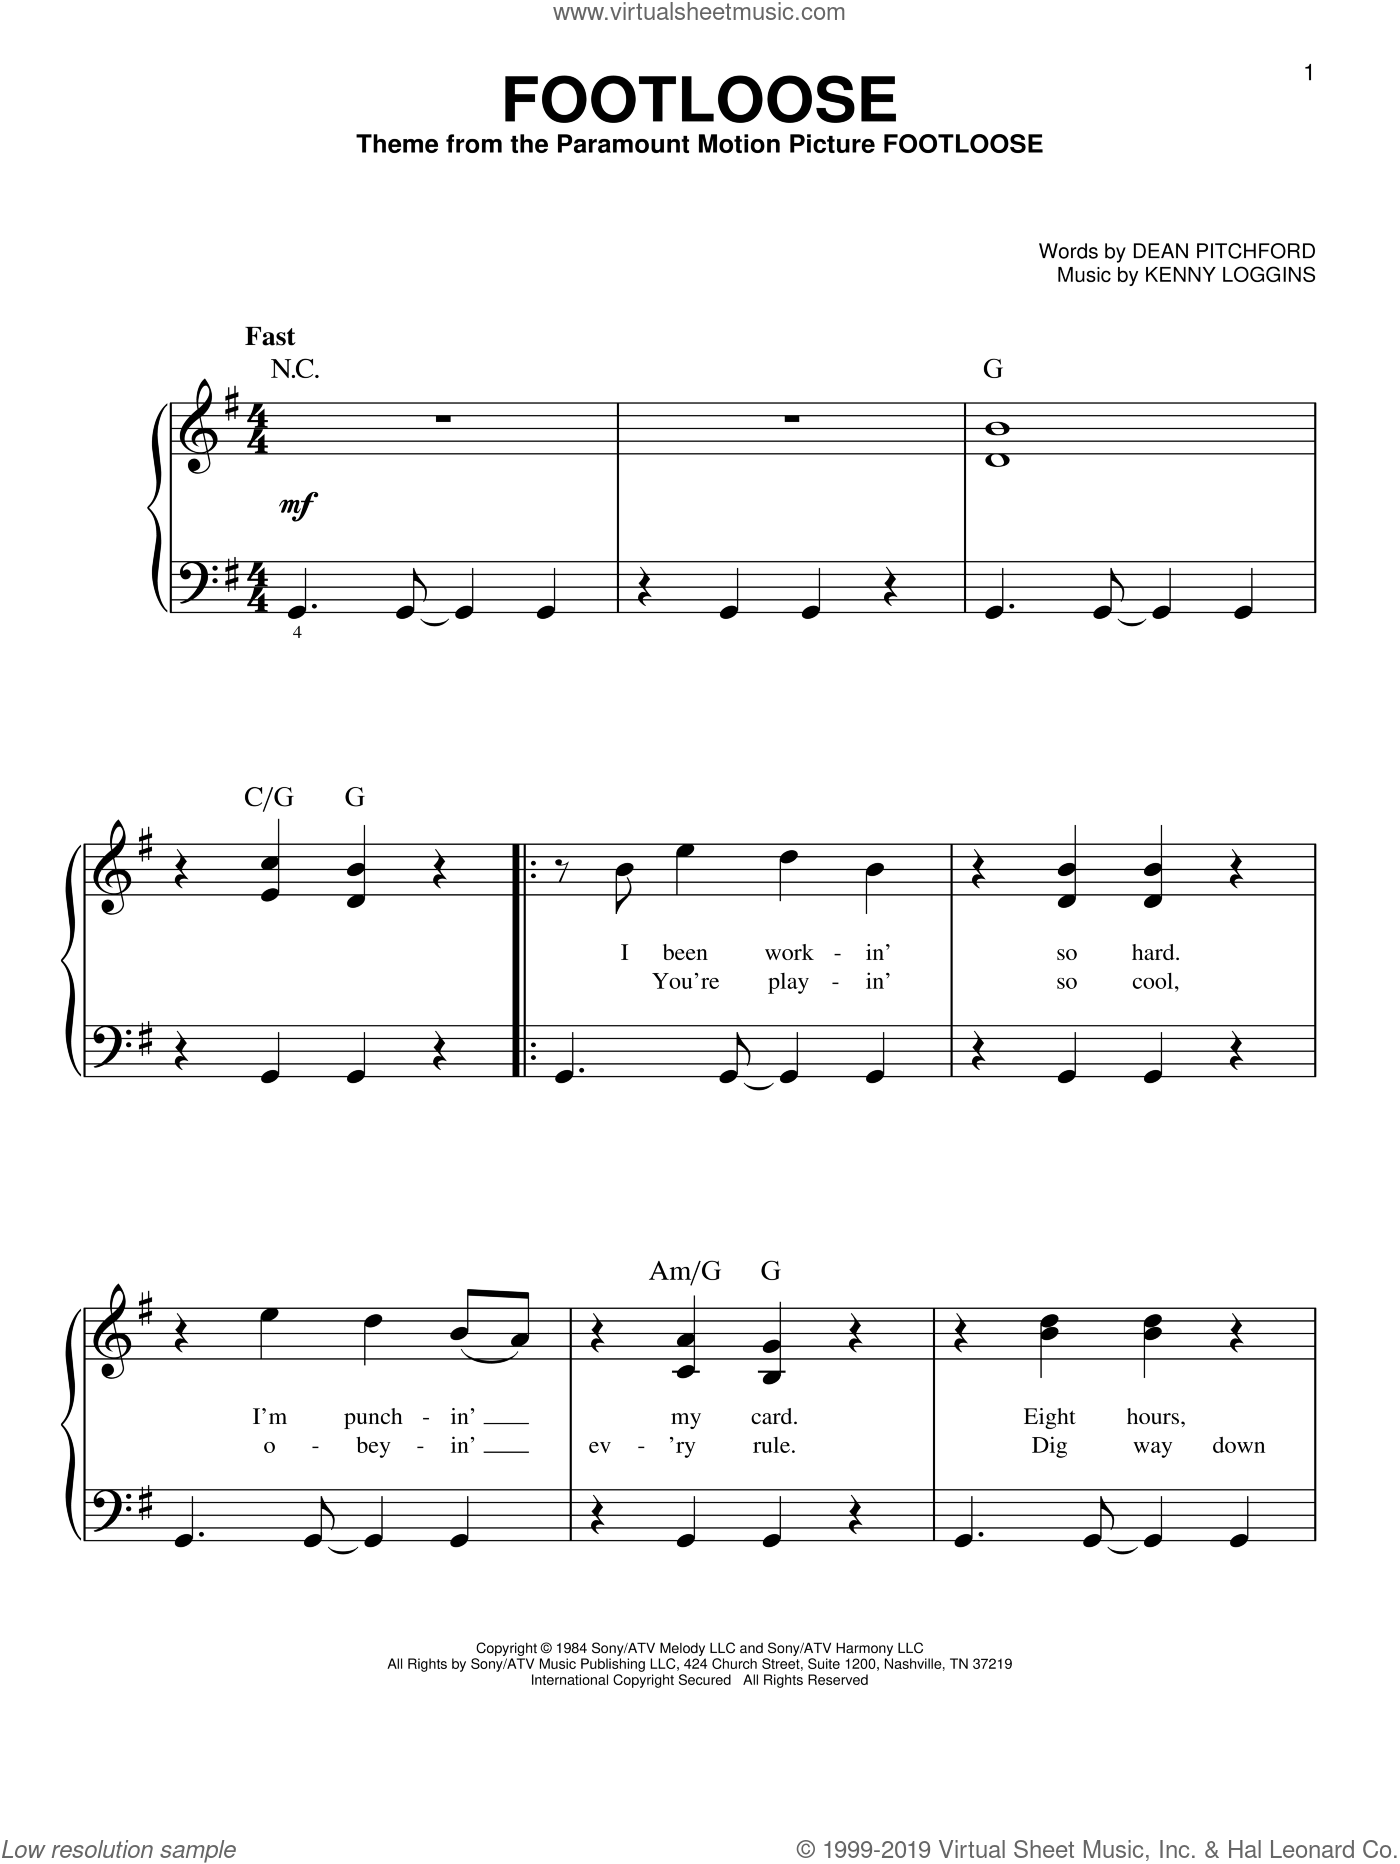 Footloose sheet music for piano solo by Dean Pitchford